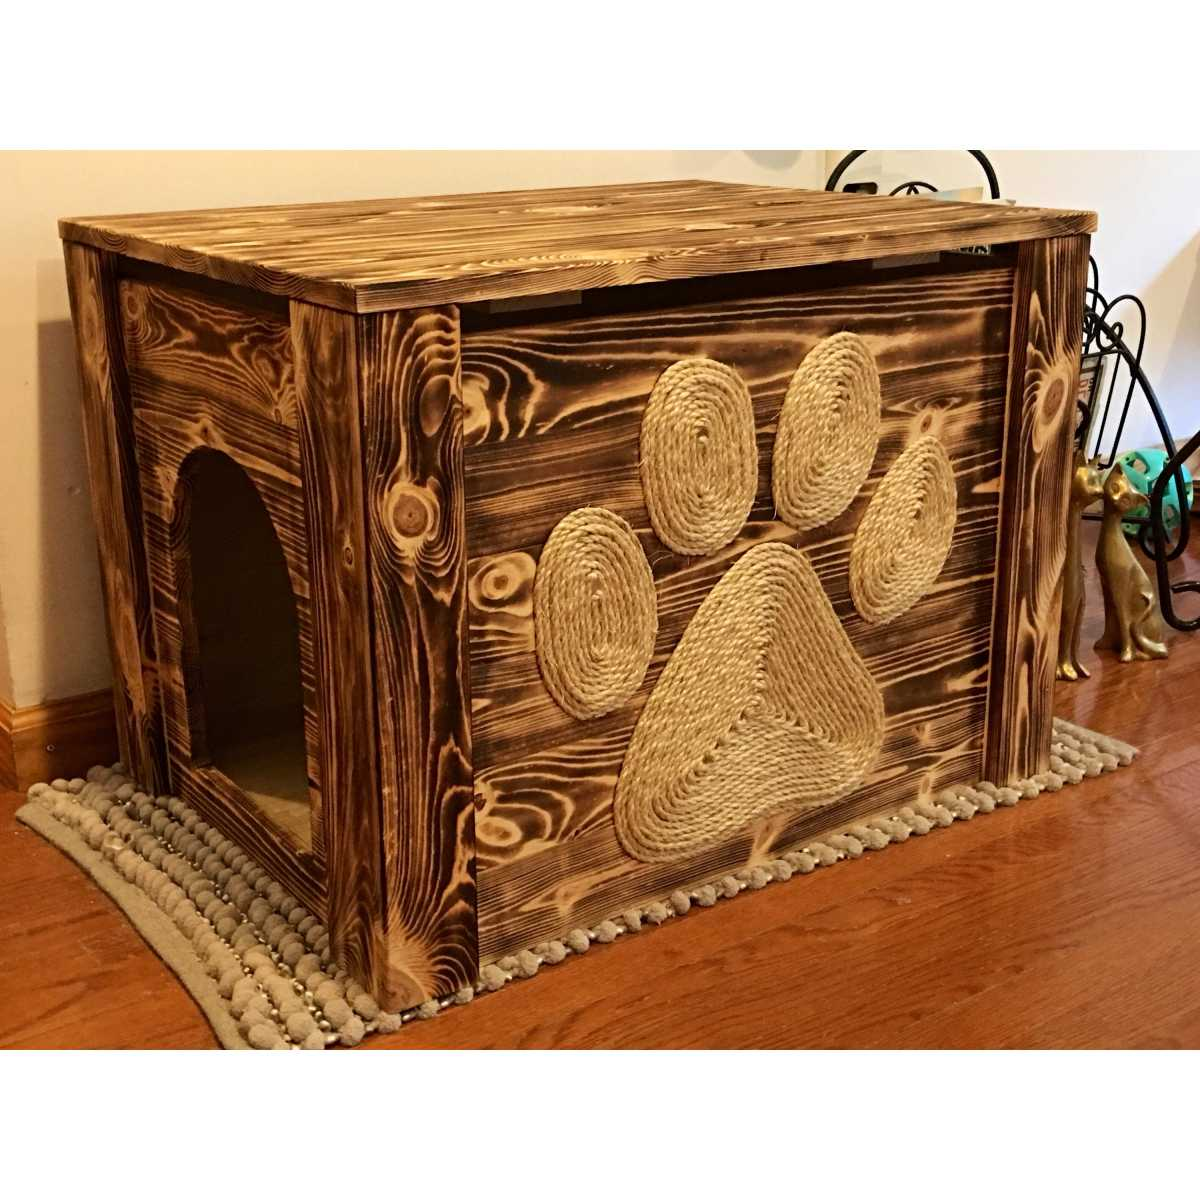 Rustic Artisan Made Cat Privacy Litter Box Hider